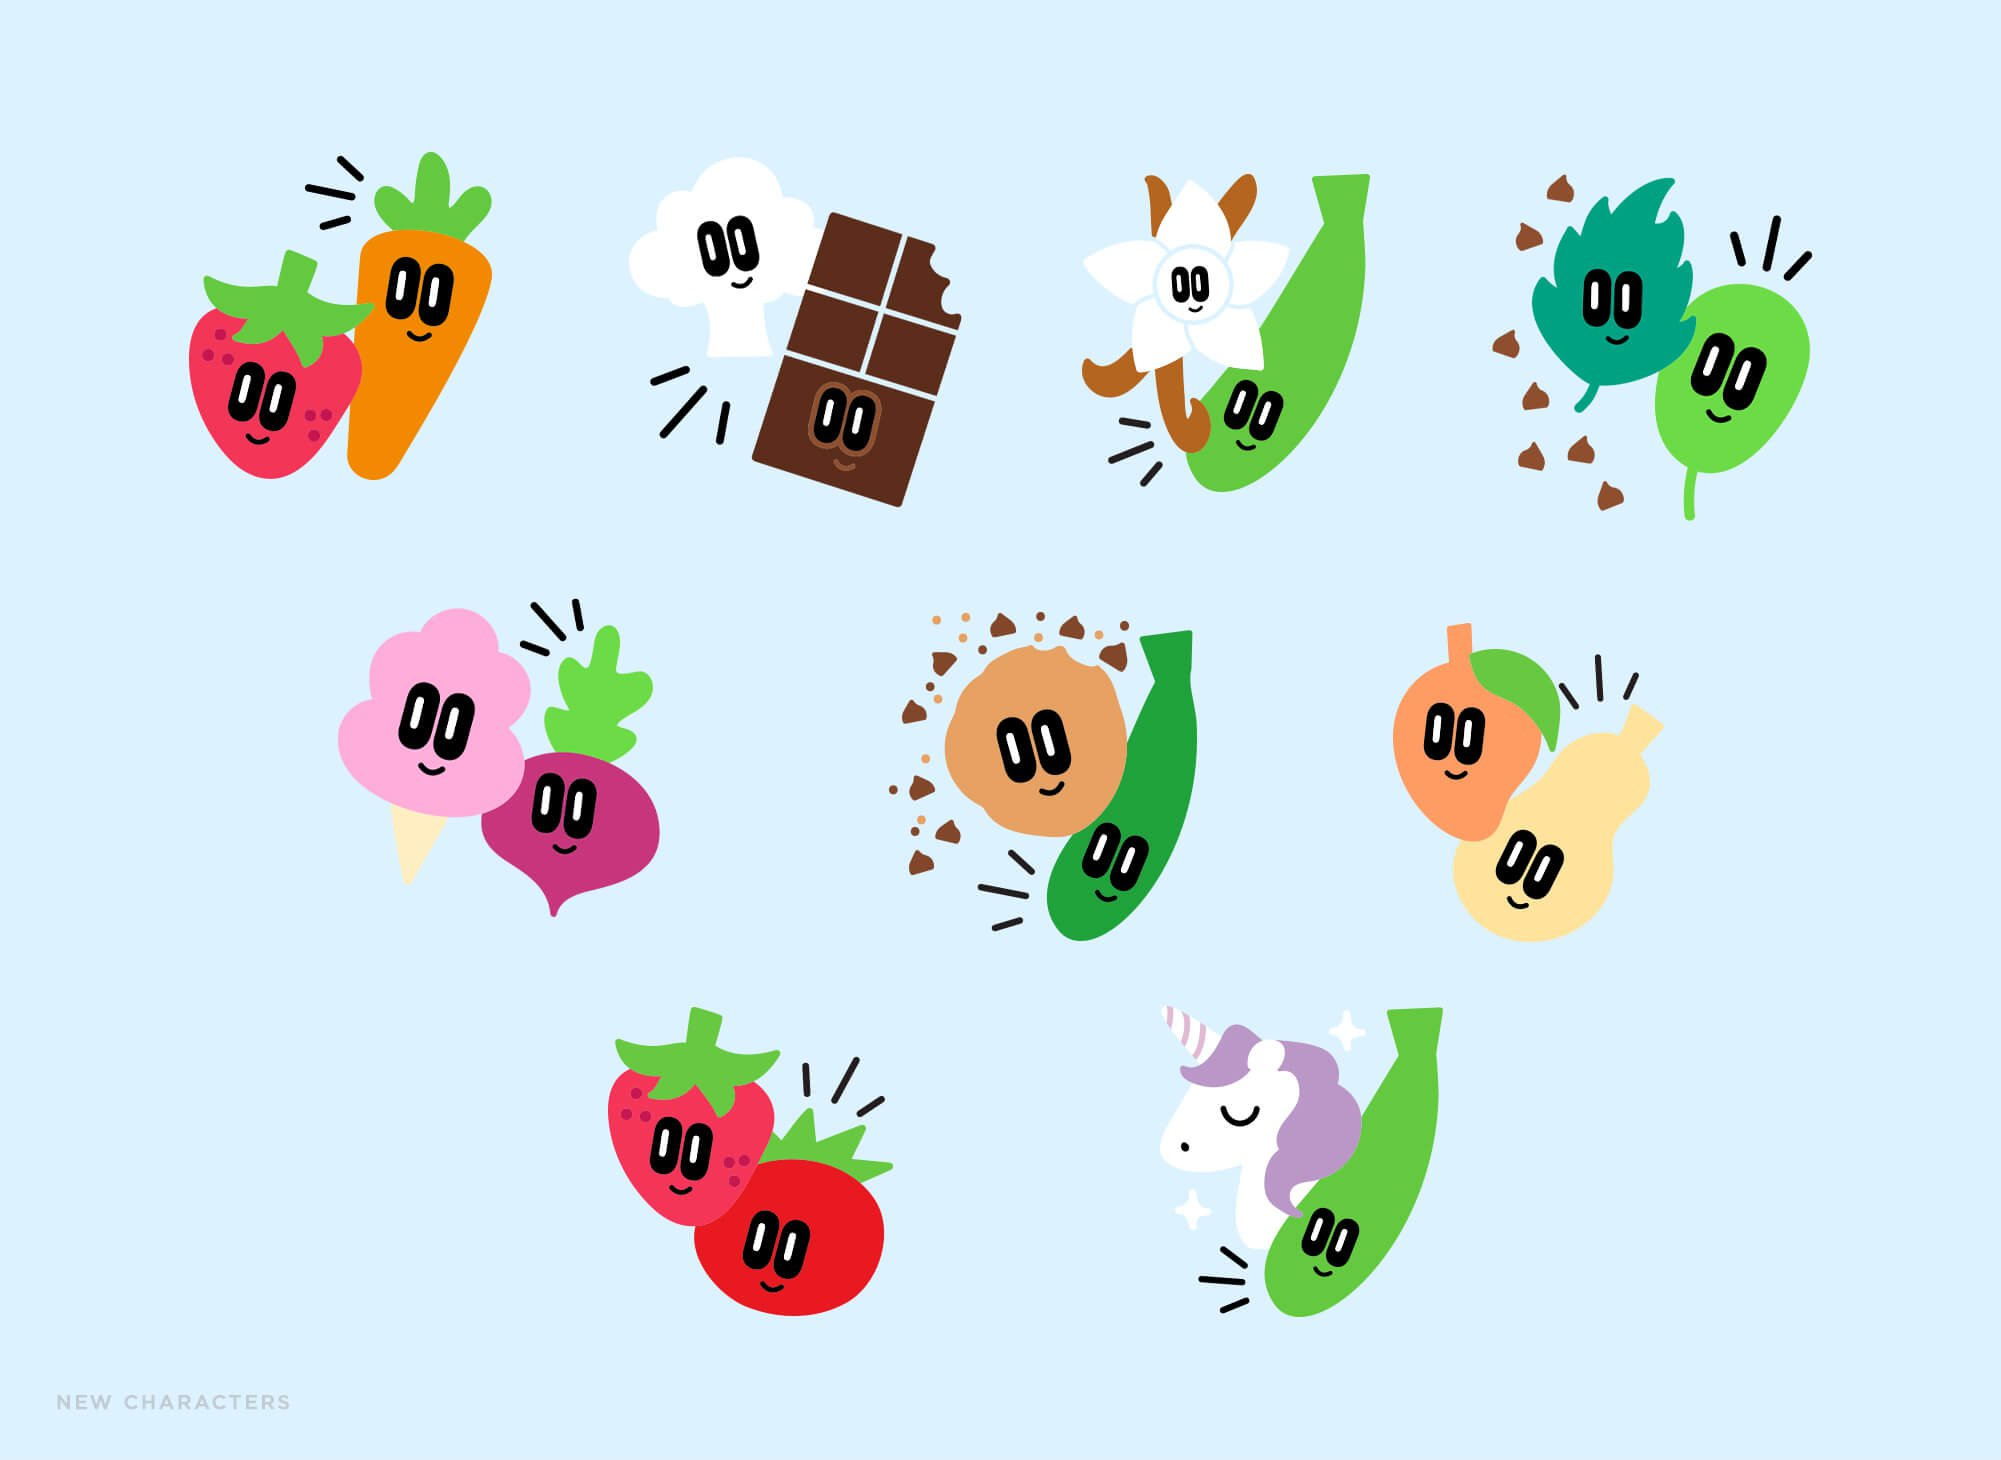 Jacober rebranding of Peekaboo Ice Cream. Photo of new veggie characters illustration representing the different flavor and veggie combinations